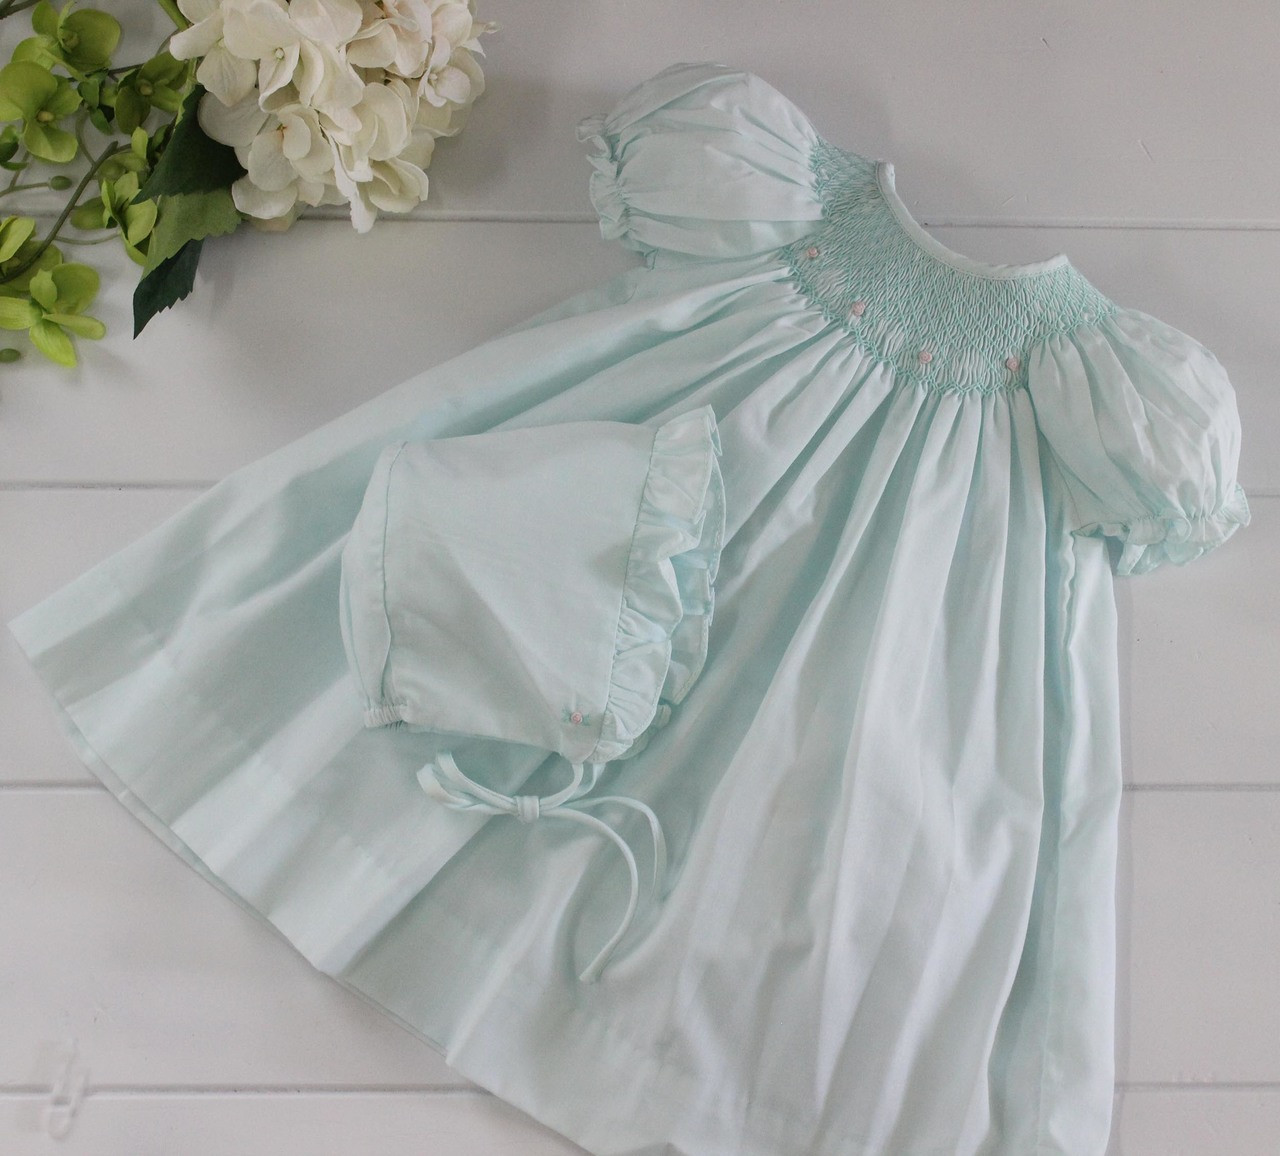 36313cd27 Petit Ami Mint Green Smocked Dress. Baby Girls Mint Green Bonnet with  Ruffle. See 2 more pictures